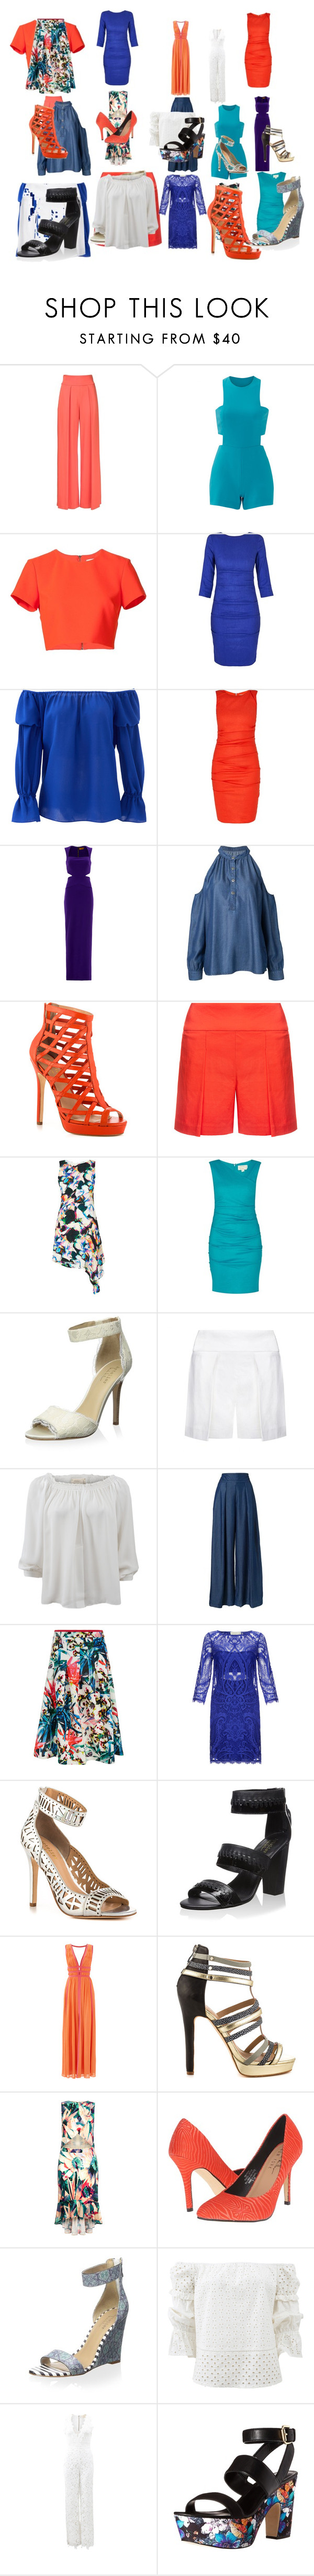 """Untitled #3944"" by luciana-boneca on Polyvore featuring Nicole Miller and Artelier by Nicole Miller"